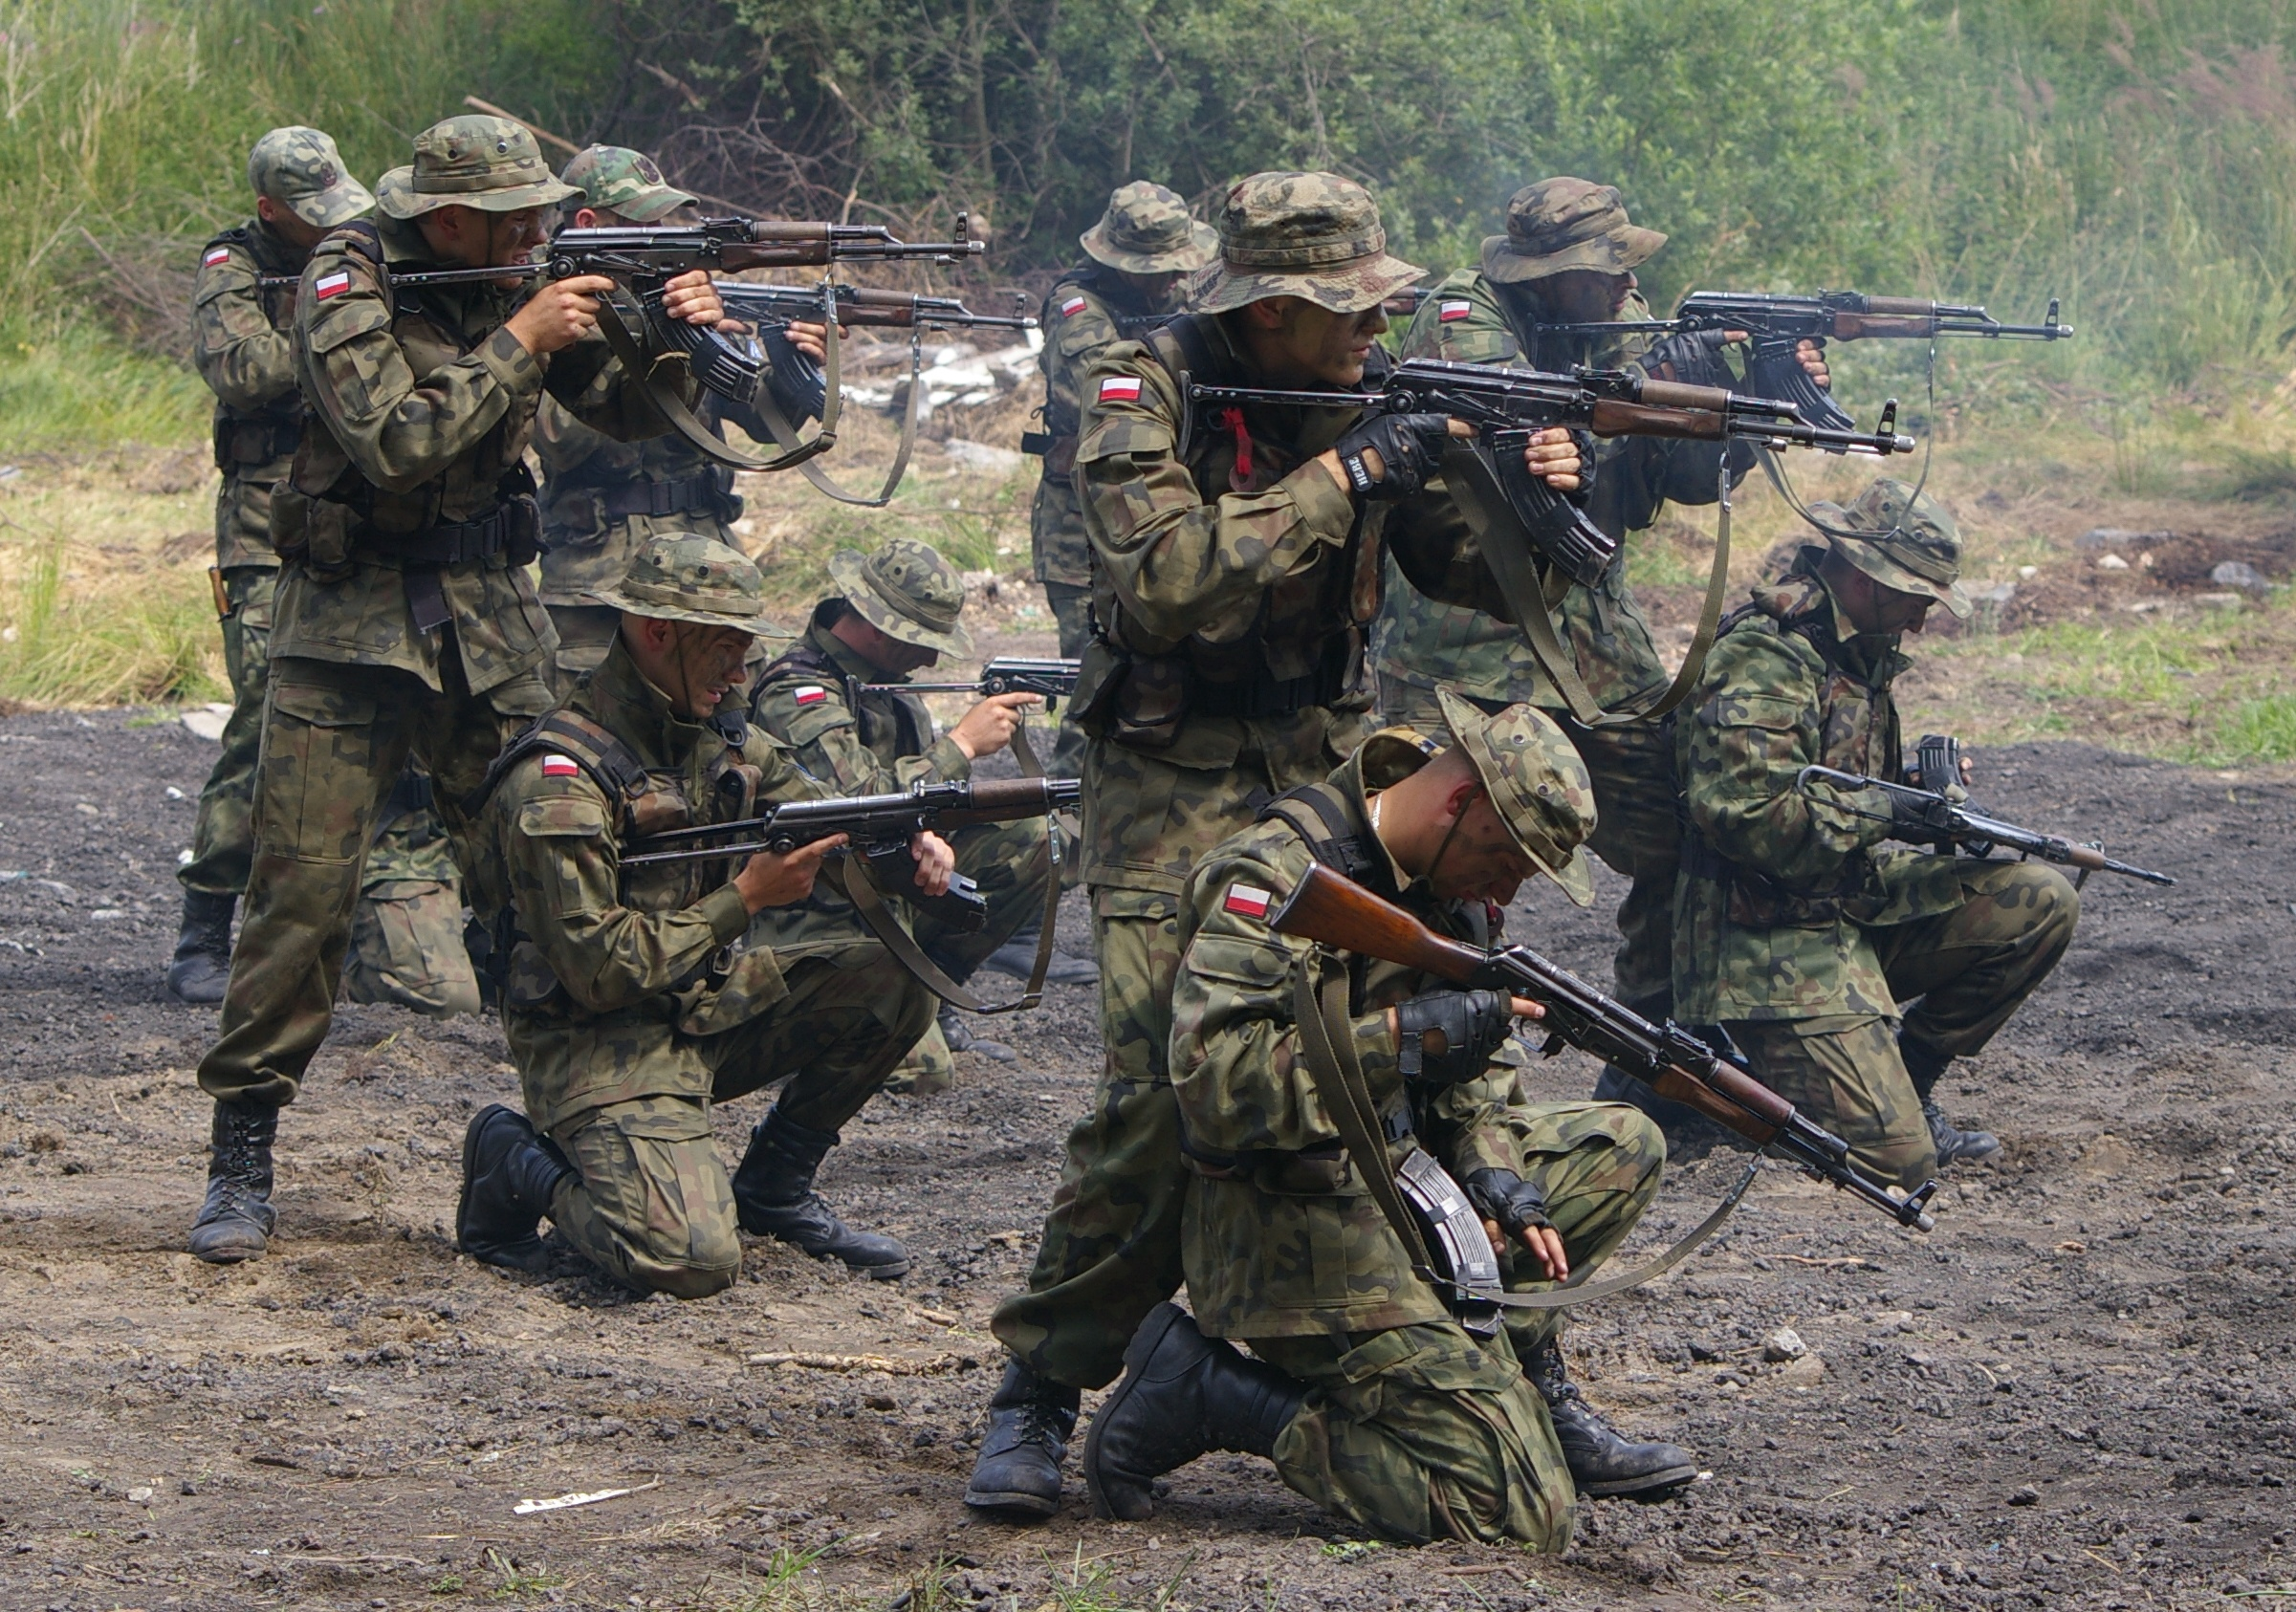 A photo of members of the Polish Army in 2008.